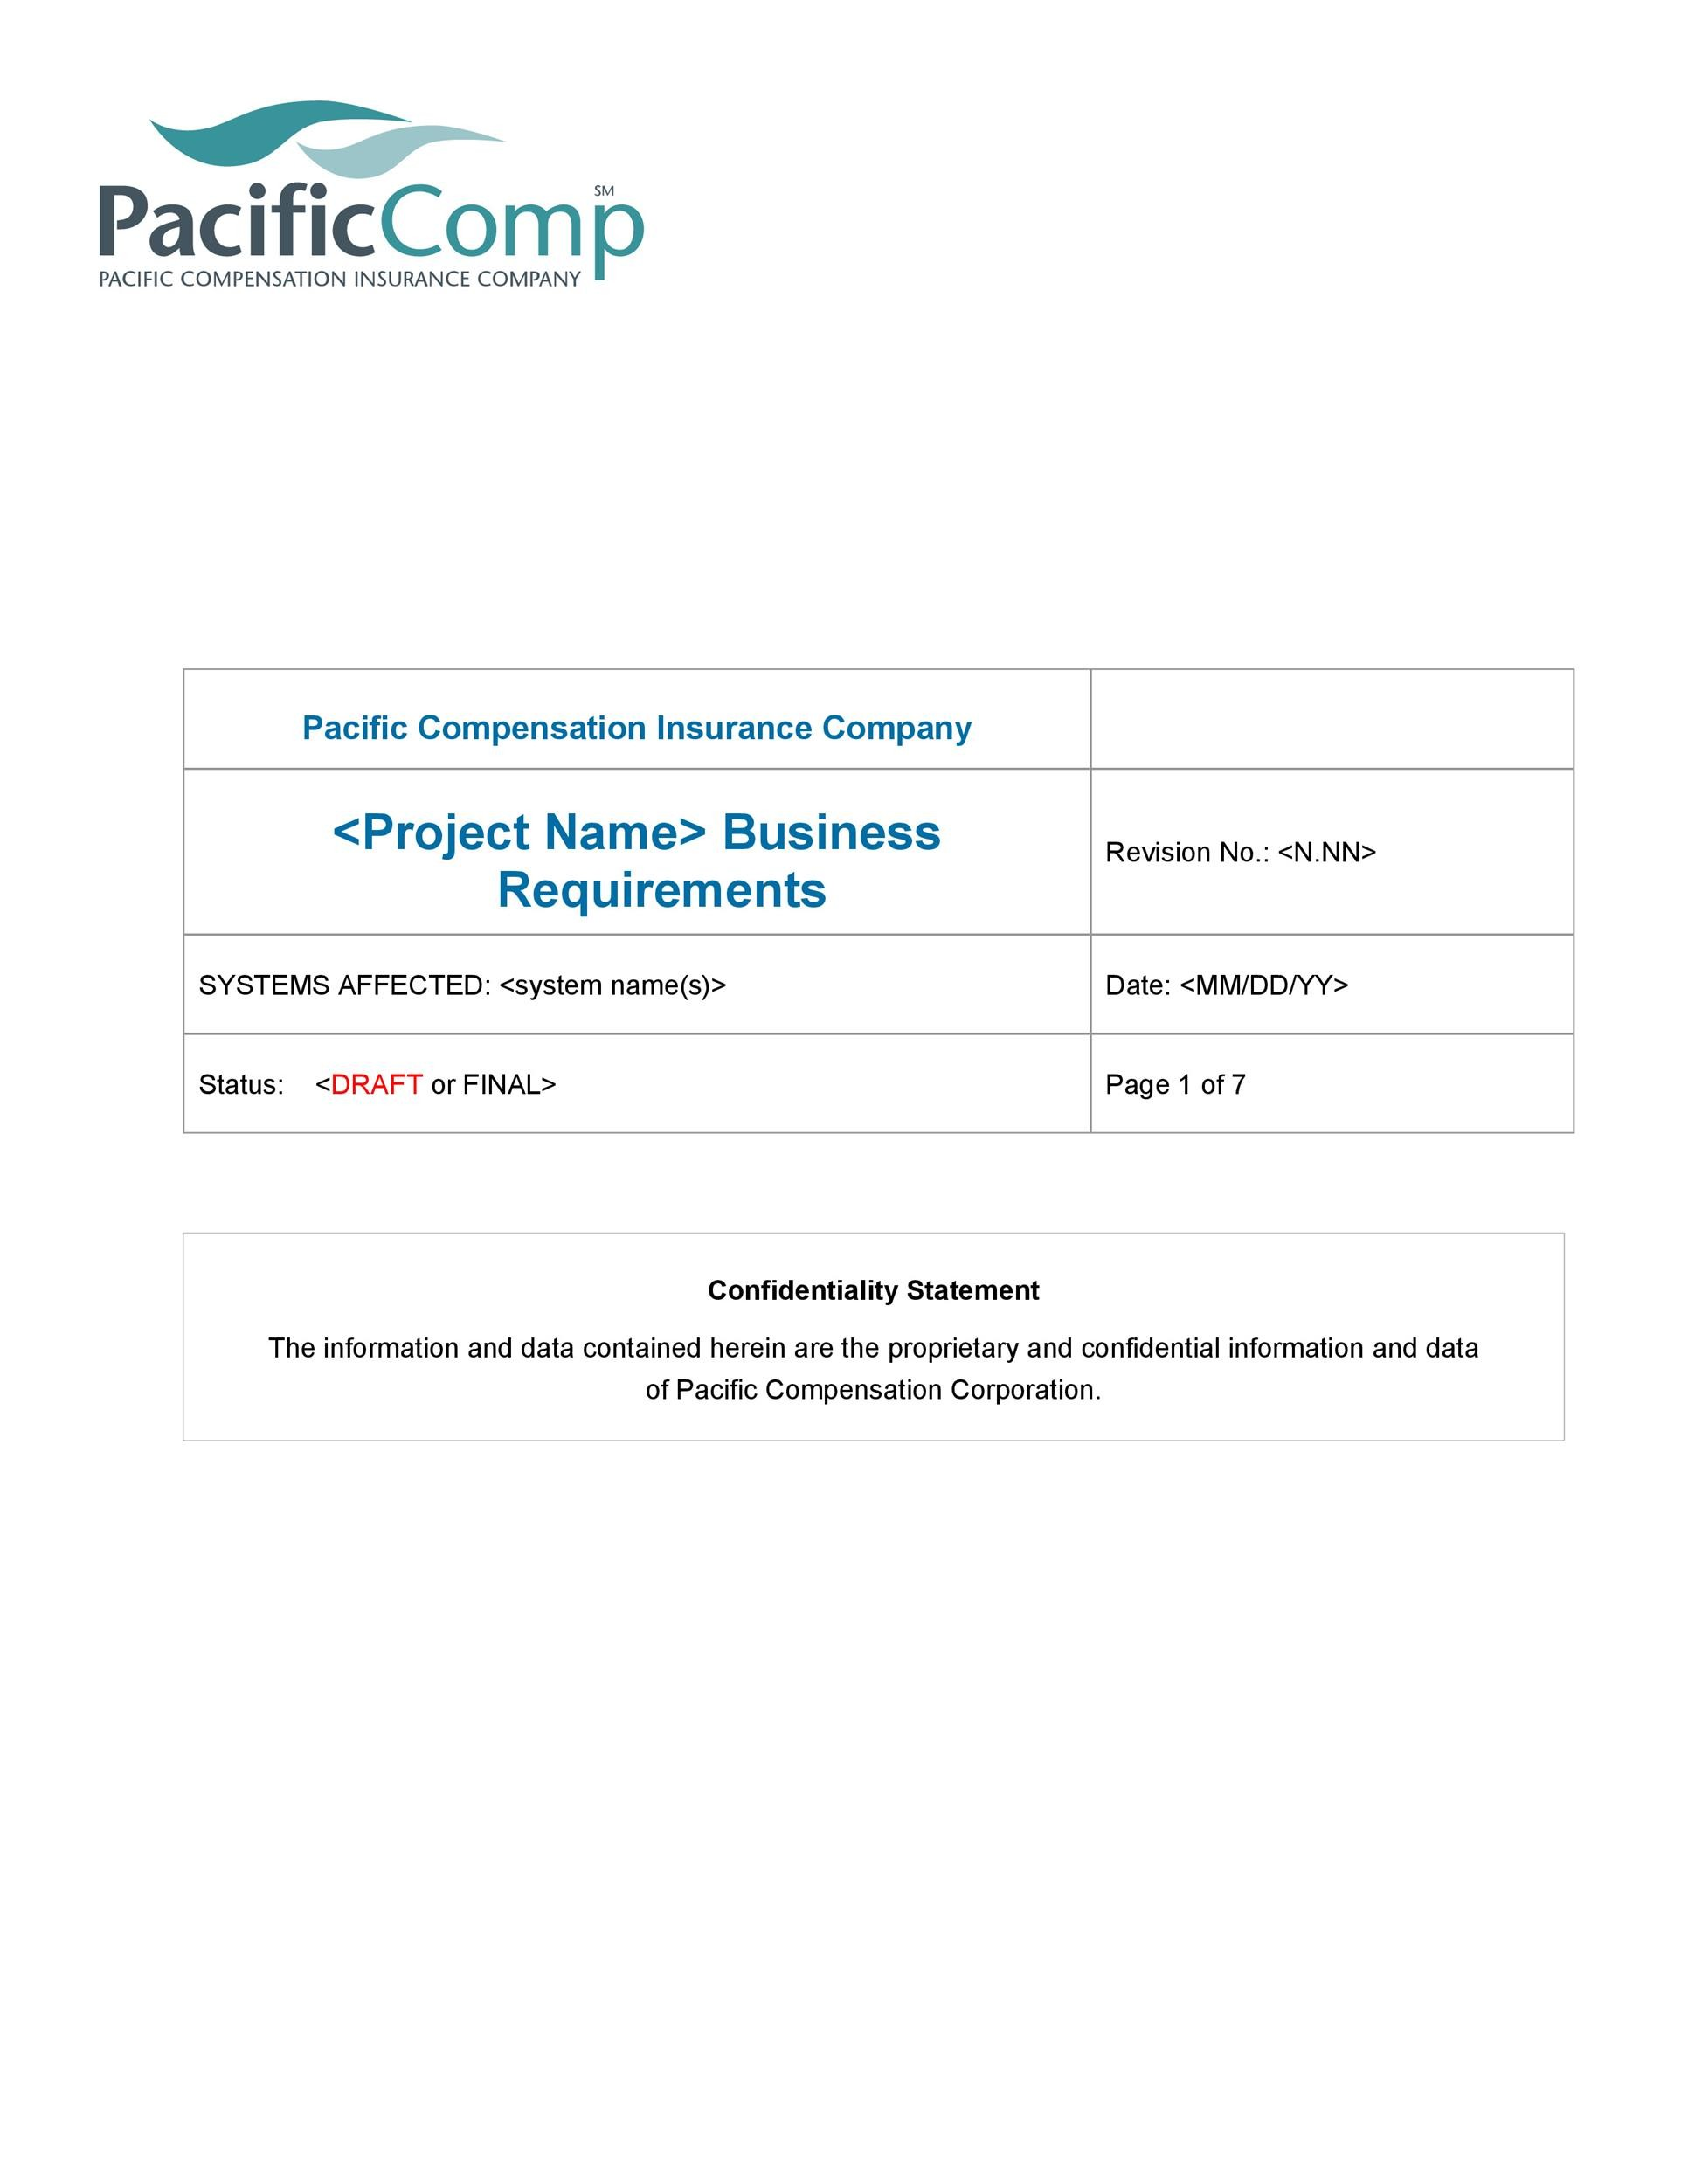 Free business requirements document template 25